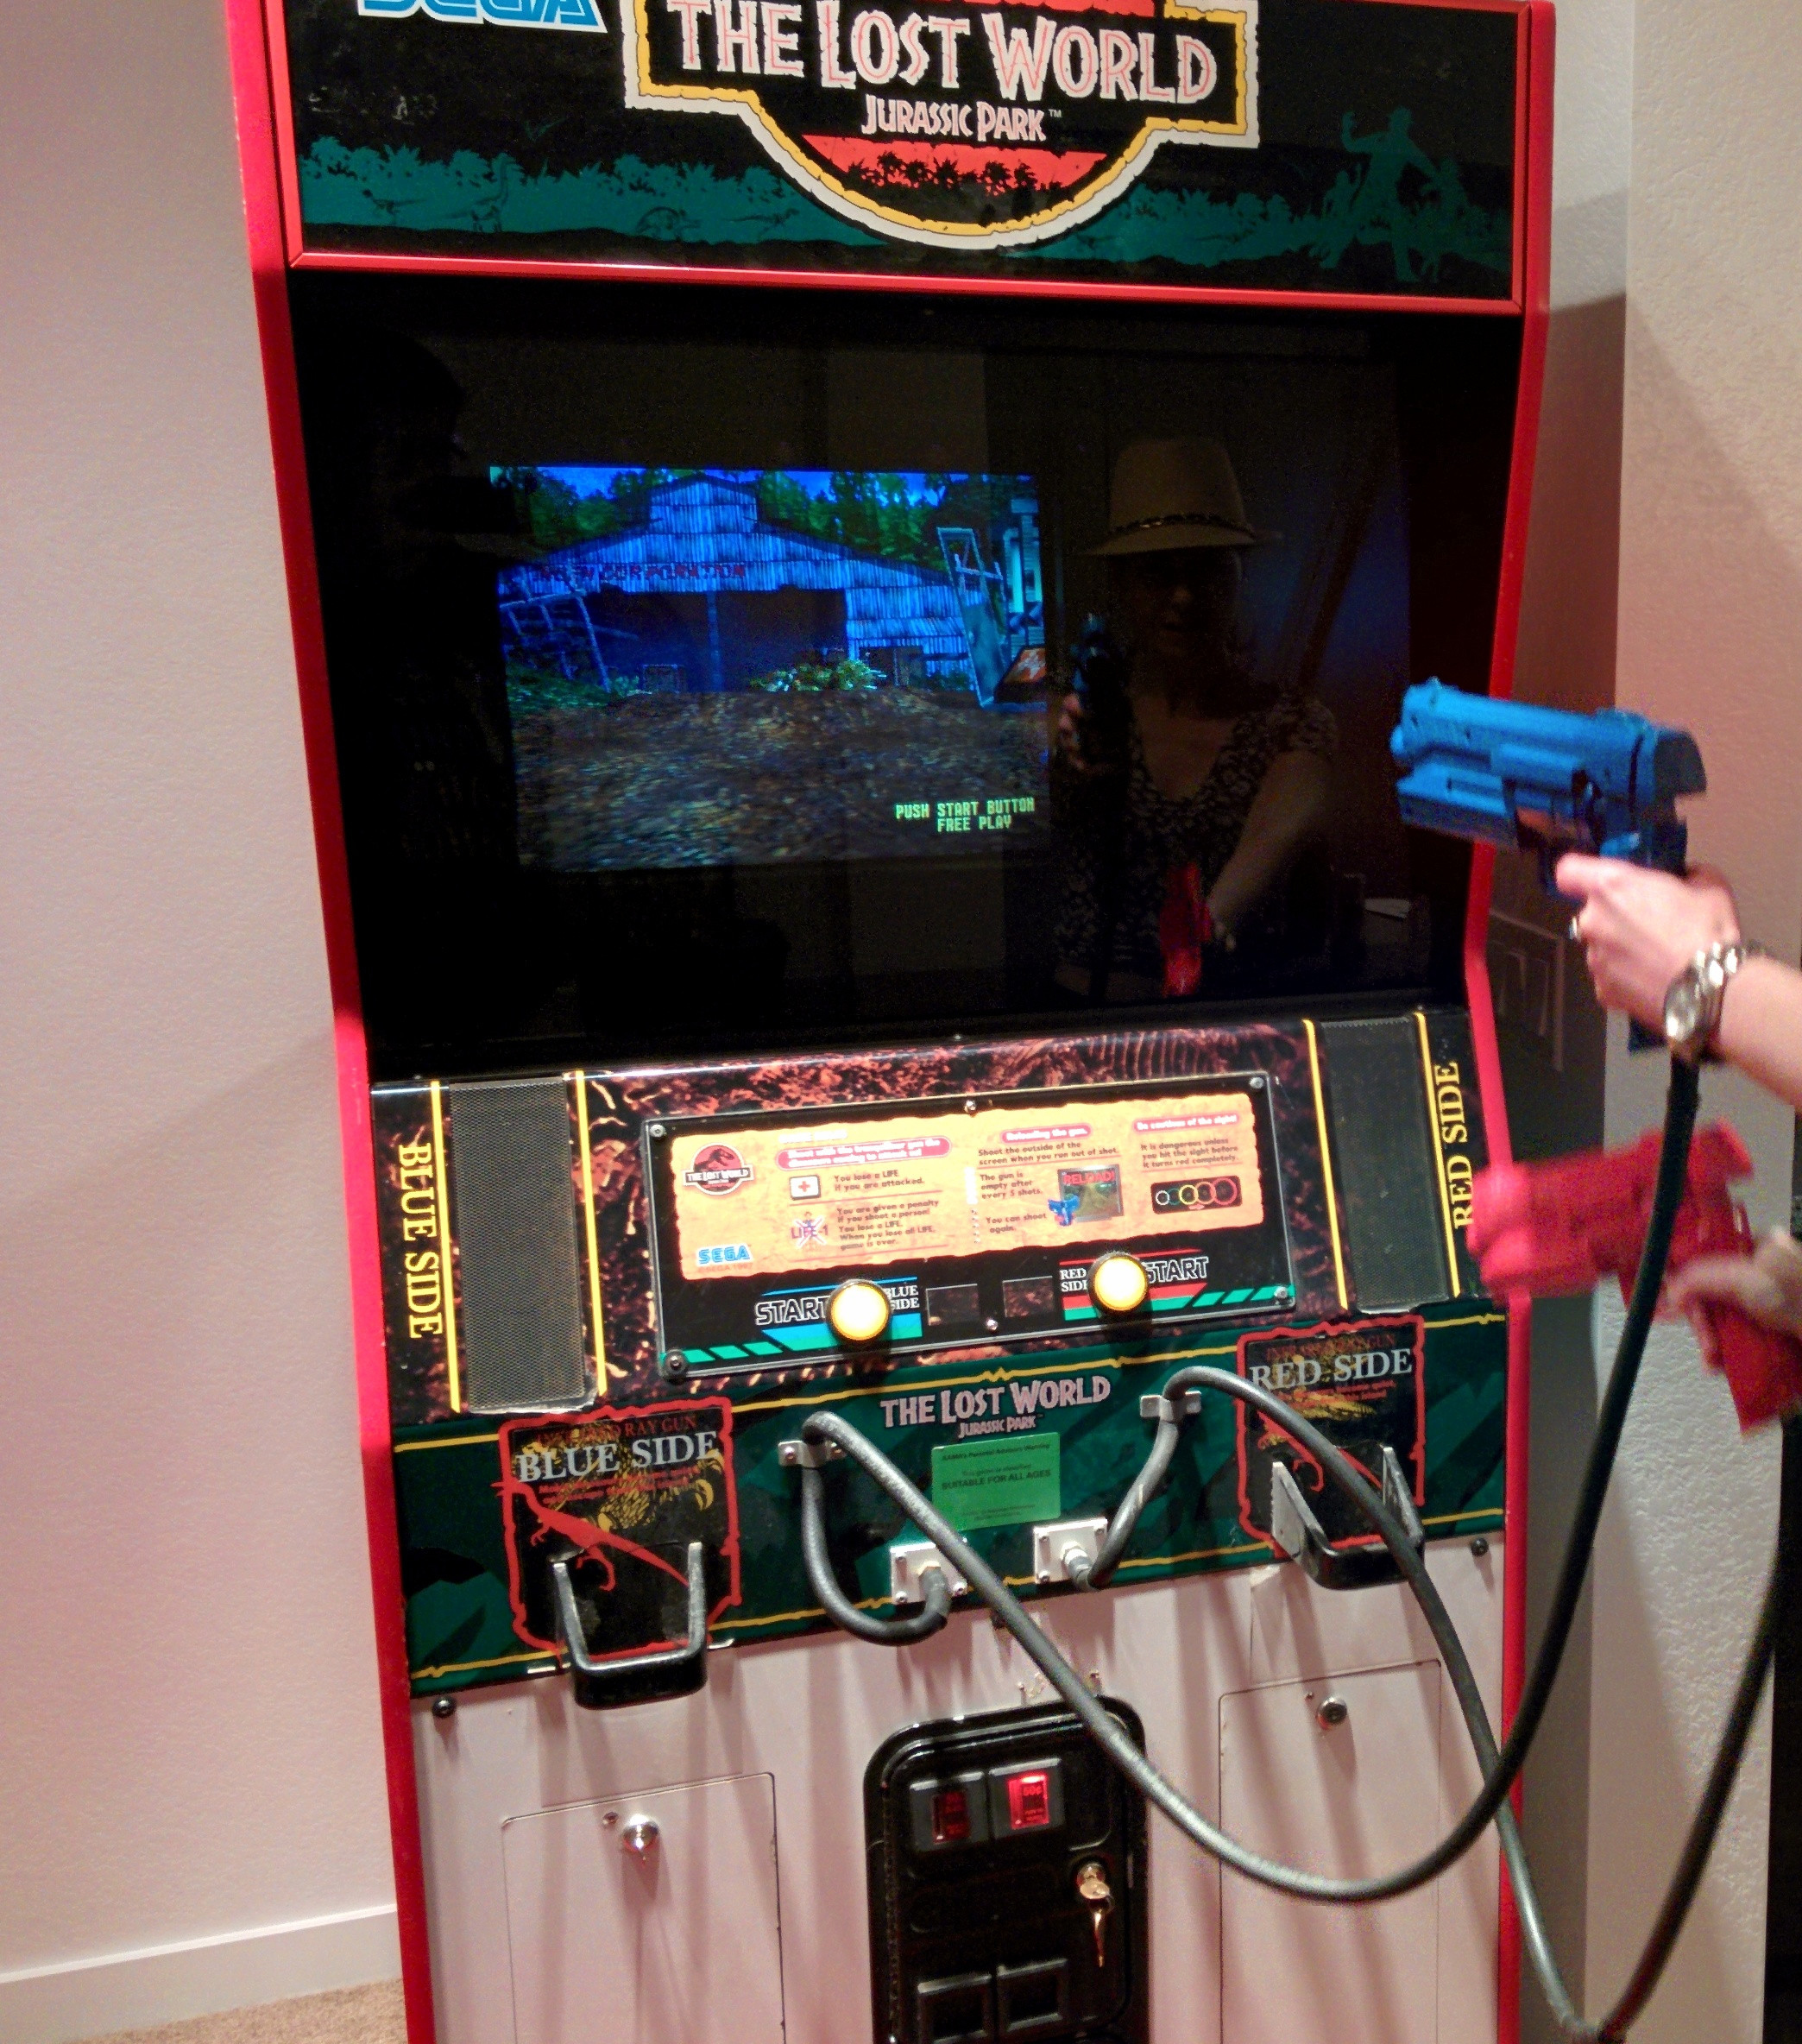 The Lost World Arcade Machine - Marketplace - AtariAge Forums